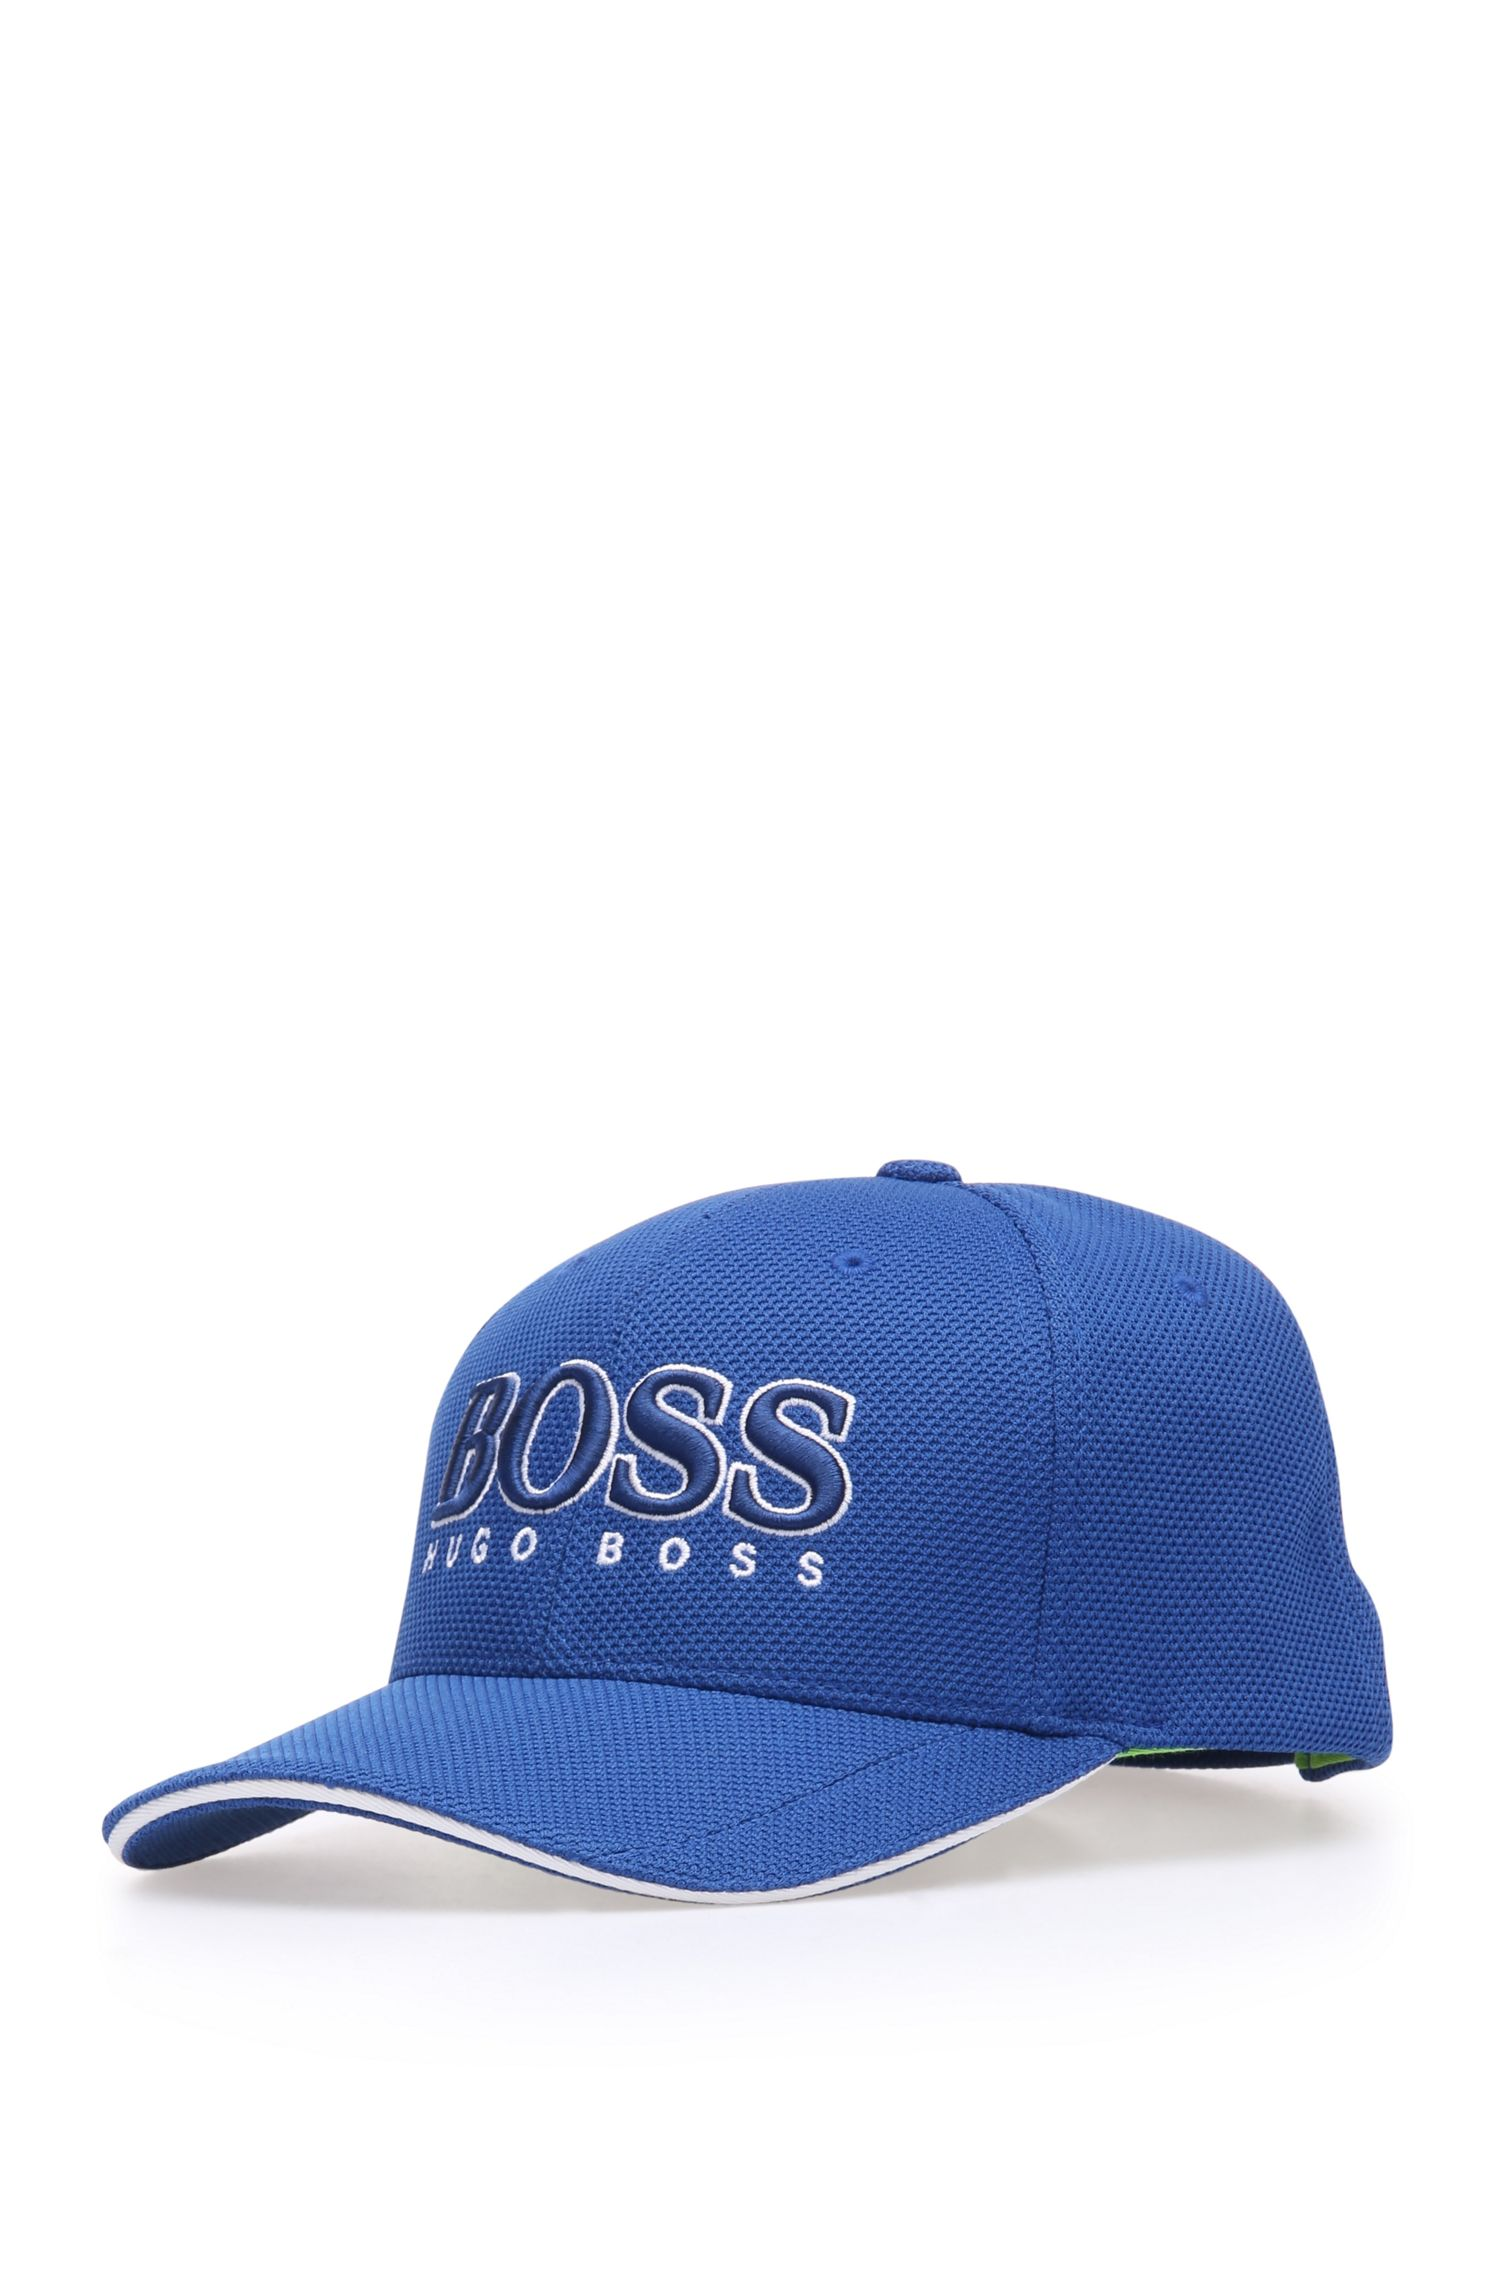 3-D Logo Performance Hat | Cap US